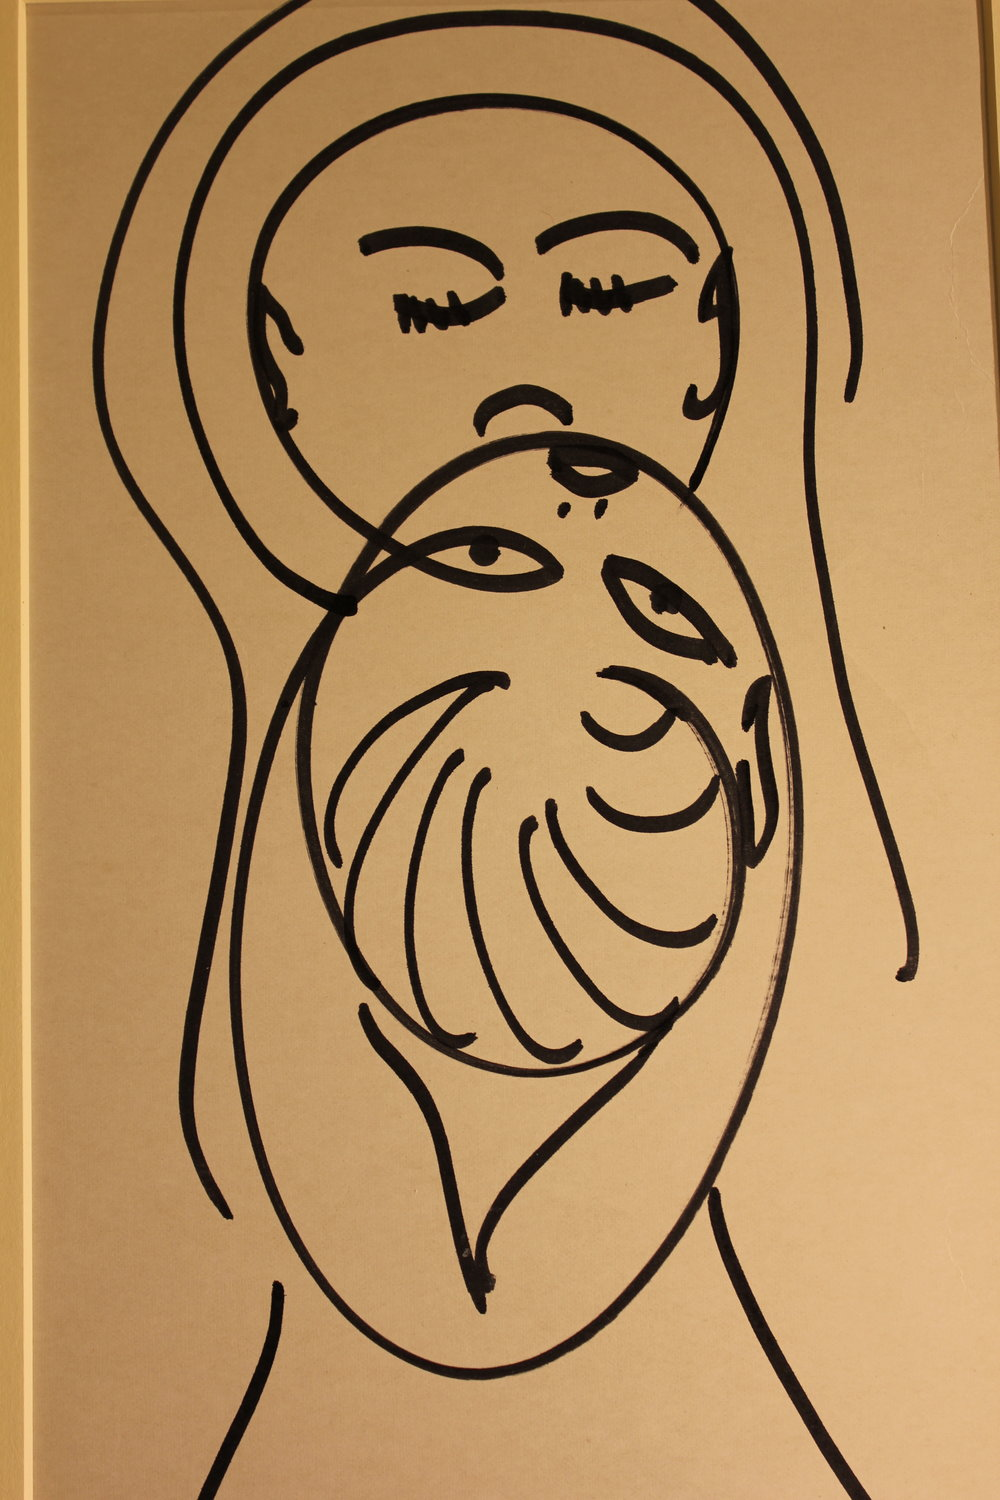 """Winnicott's Squiggle Drawing, """"Mother and Baby,"""" Photo taken at the Wellcome library 2016"""